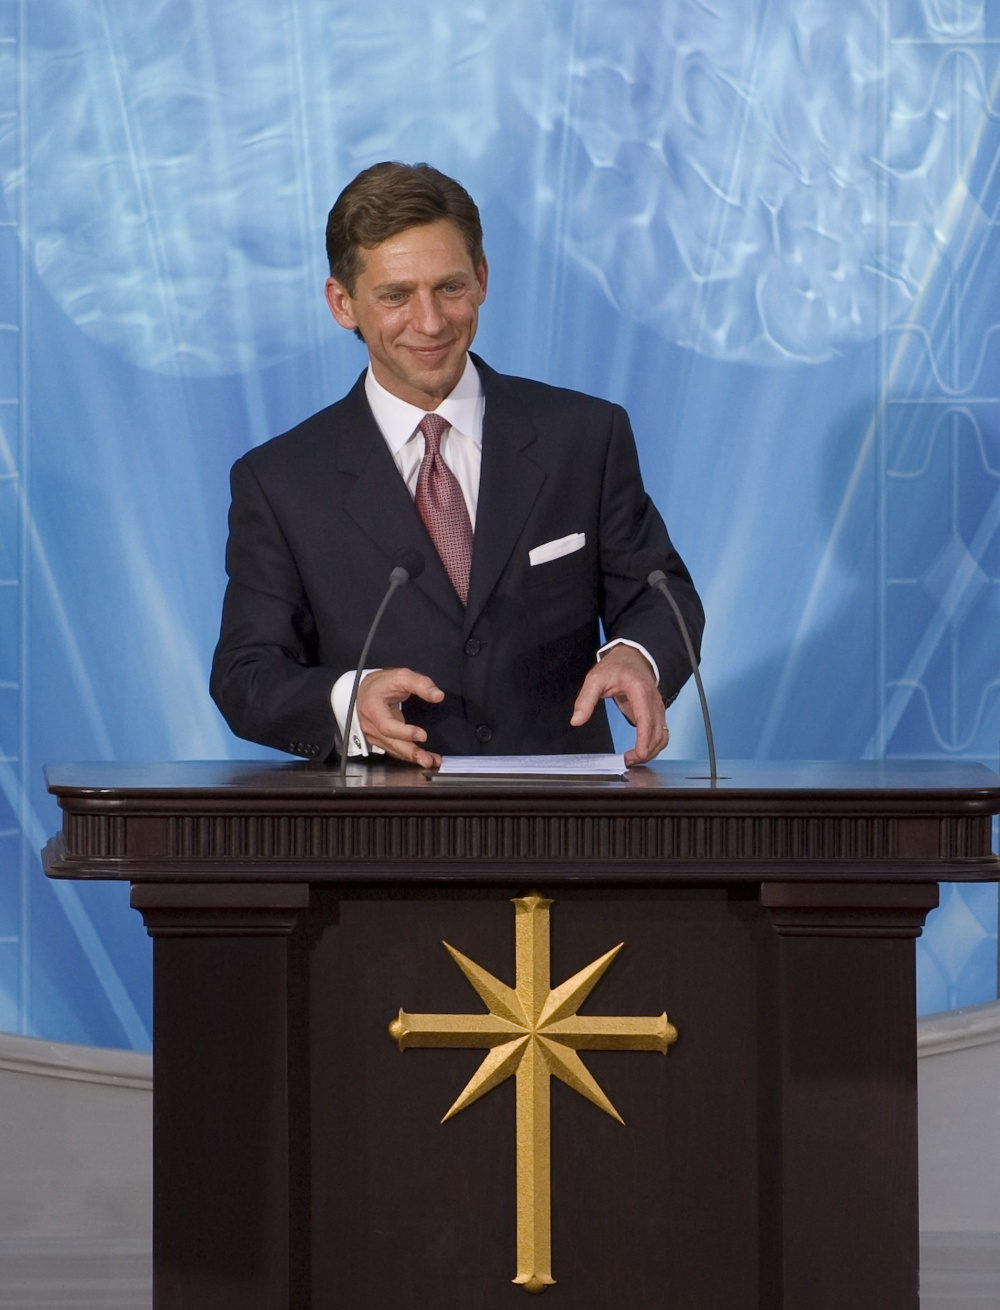 understanding the new religion of scientology Scientology as a religion by professor lonnie kliever:  scientology's understanding of  as befitting a new religion, the church of scientology's forms.